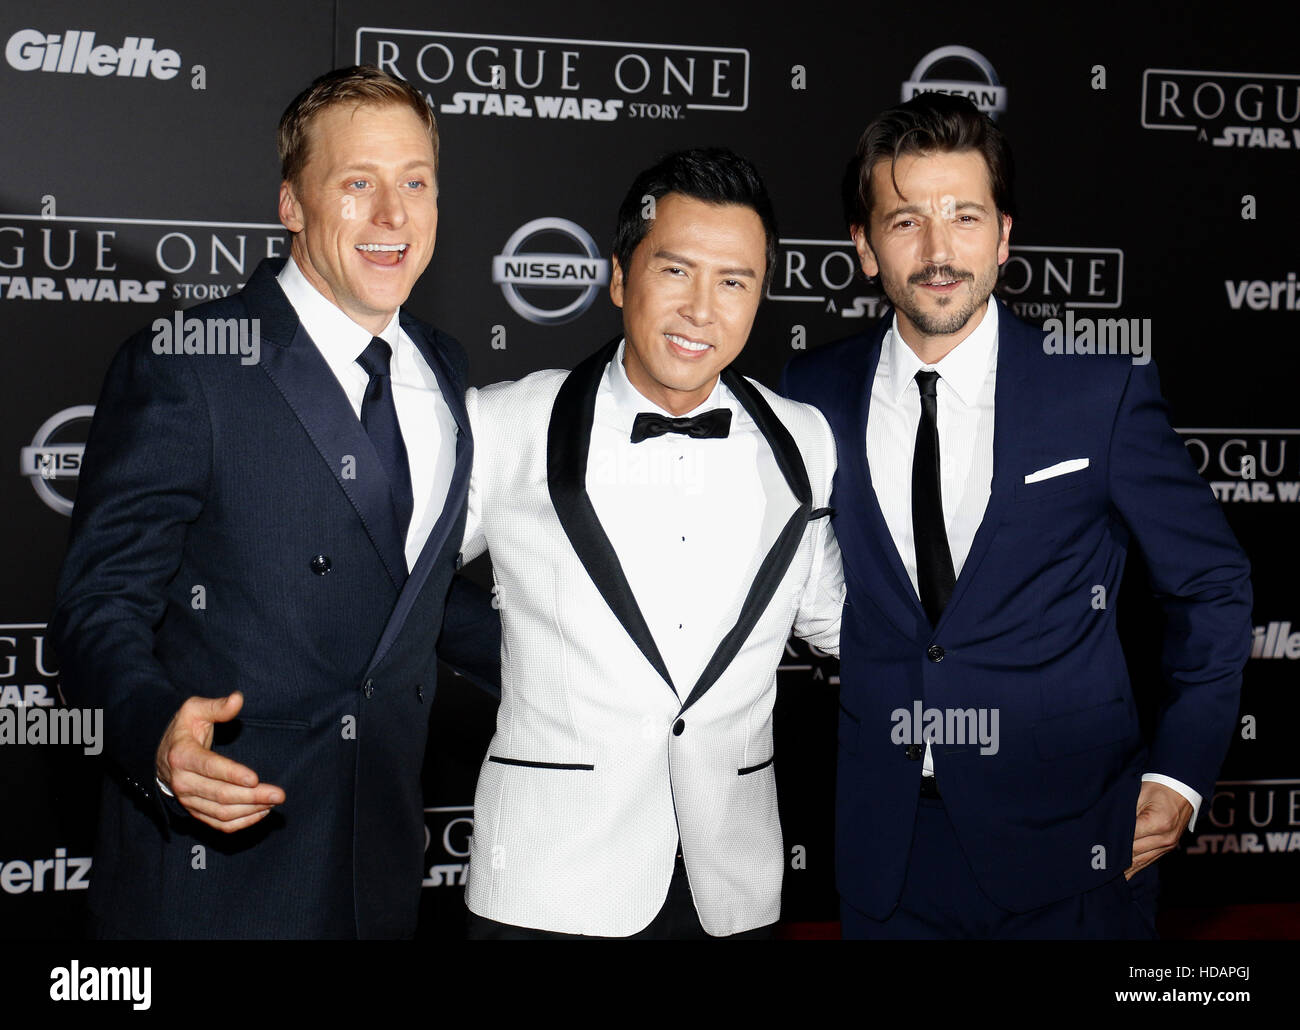 "Hollywood, California, USA. 10 dic, 2016. Alan Tudyk, Donnie Yen y Diego Luna en el estreno mundial de ""Rogue: Imagen De Stock"